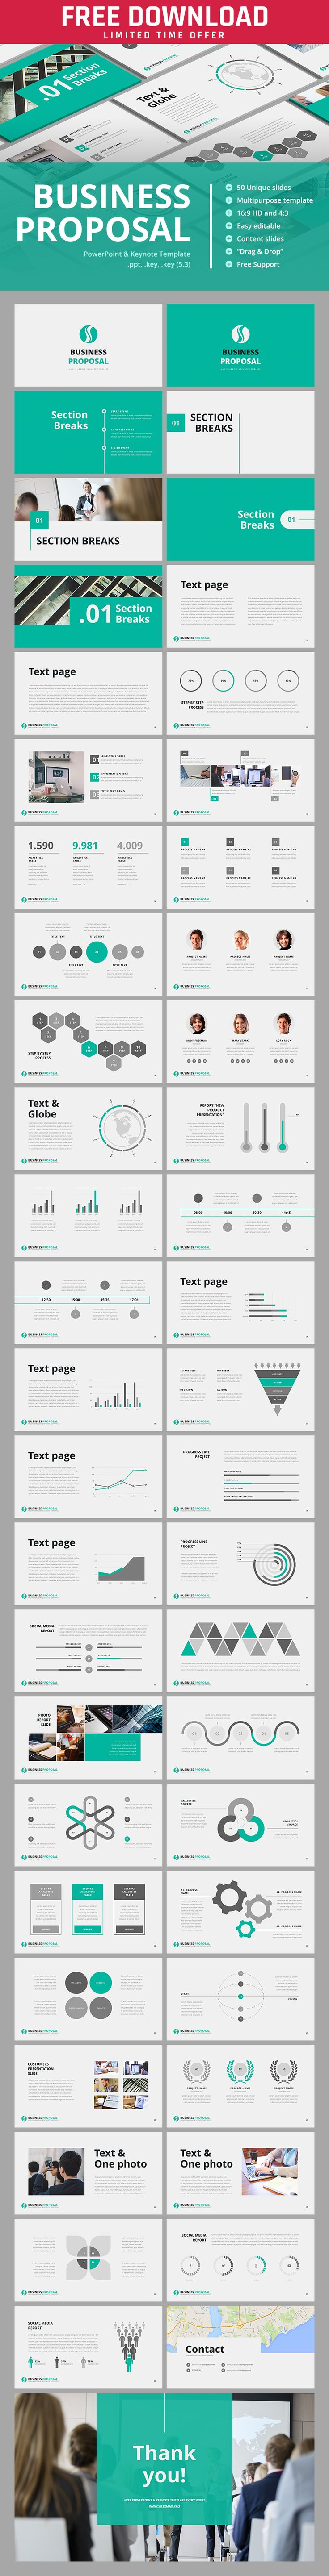 Make Them The Business Proposal They Will Never Refuse. More Keynote  Templates U003e  Download Business Proposal Template